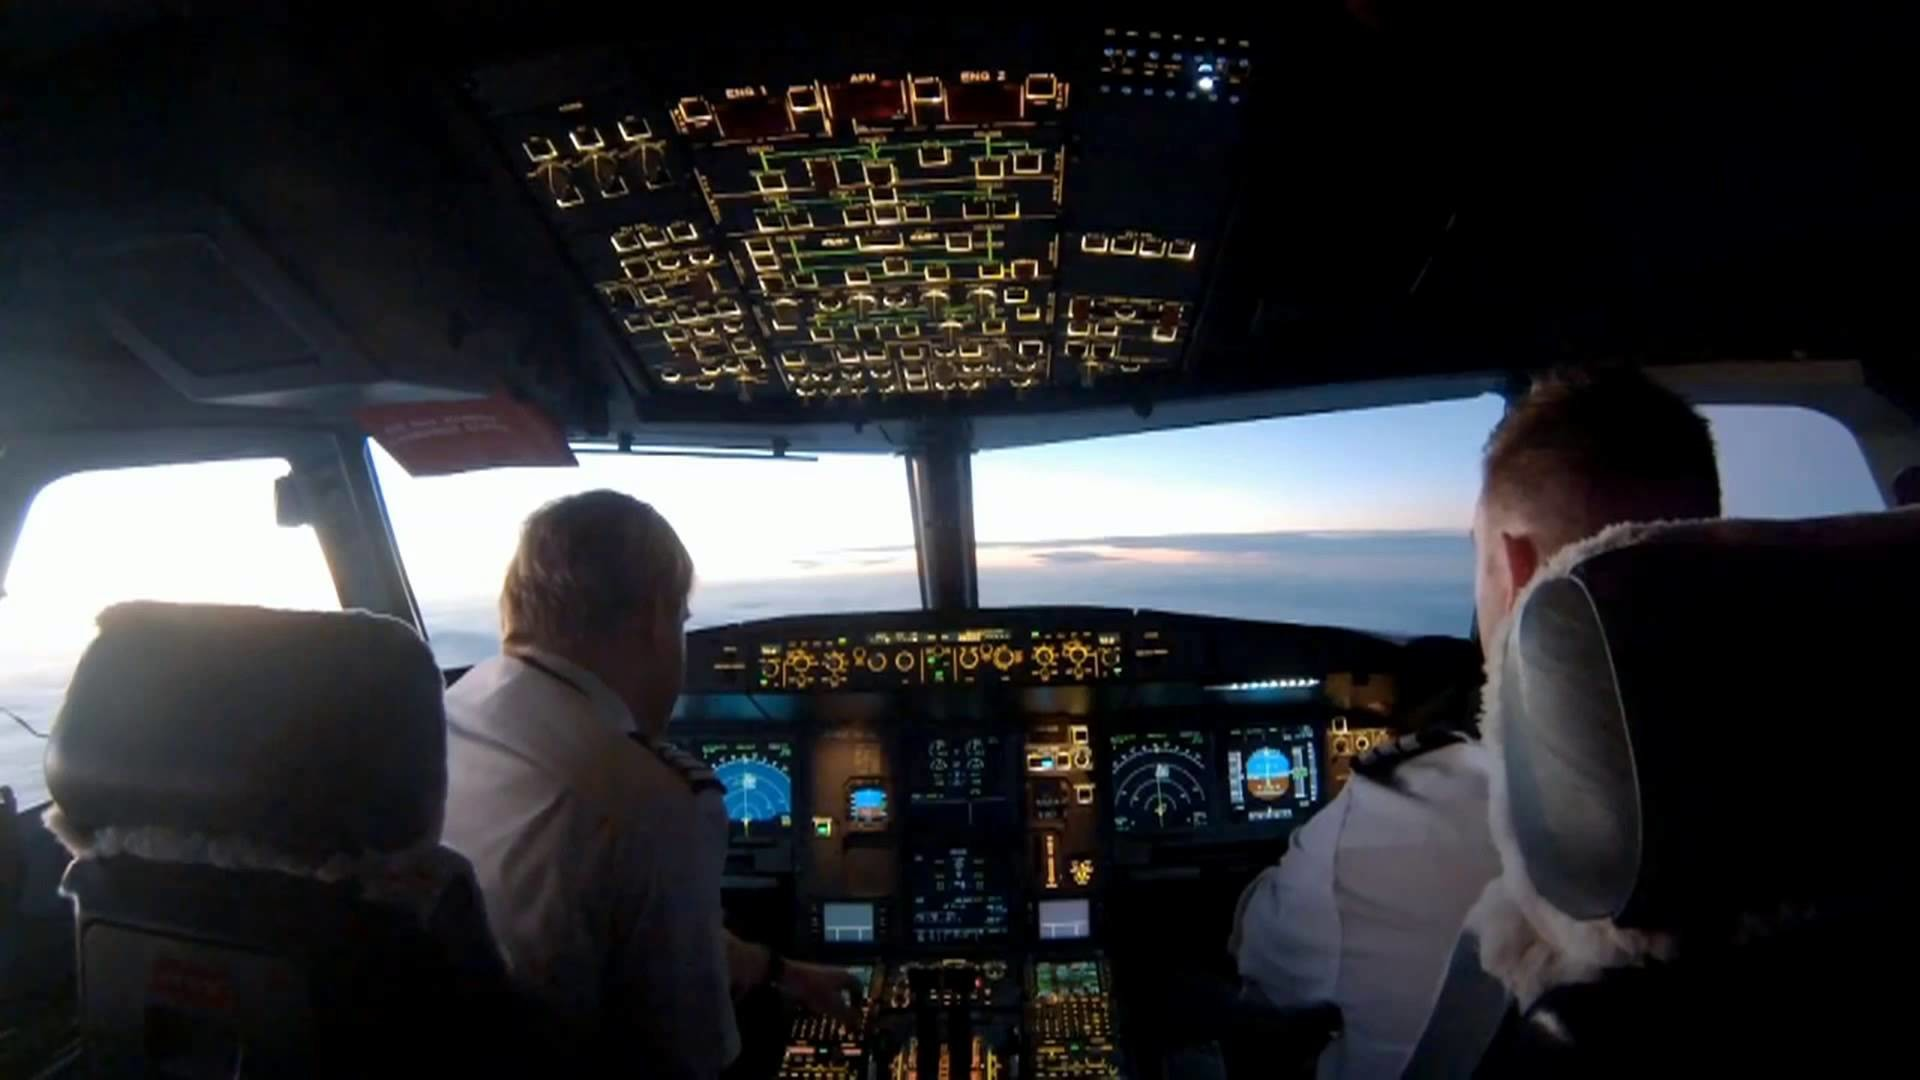 Airplane Cockpit Wallpaper Hd 73 Images